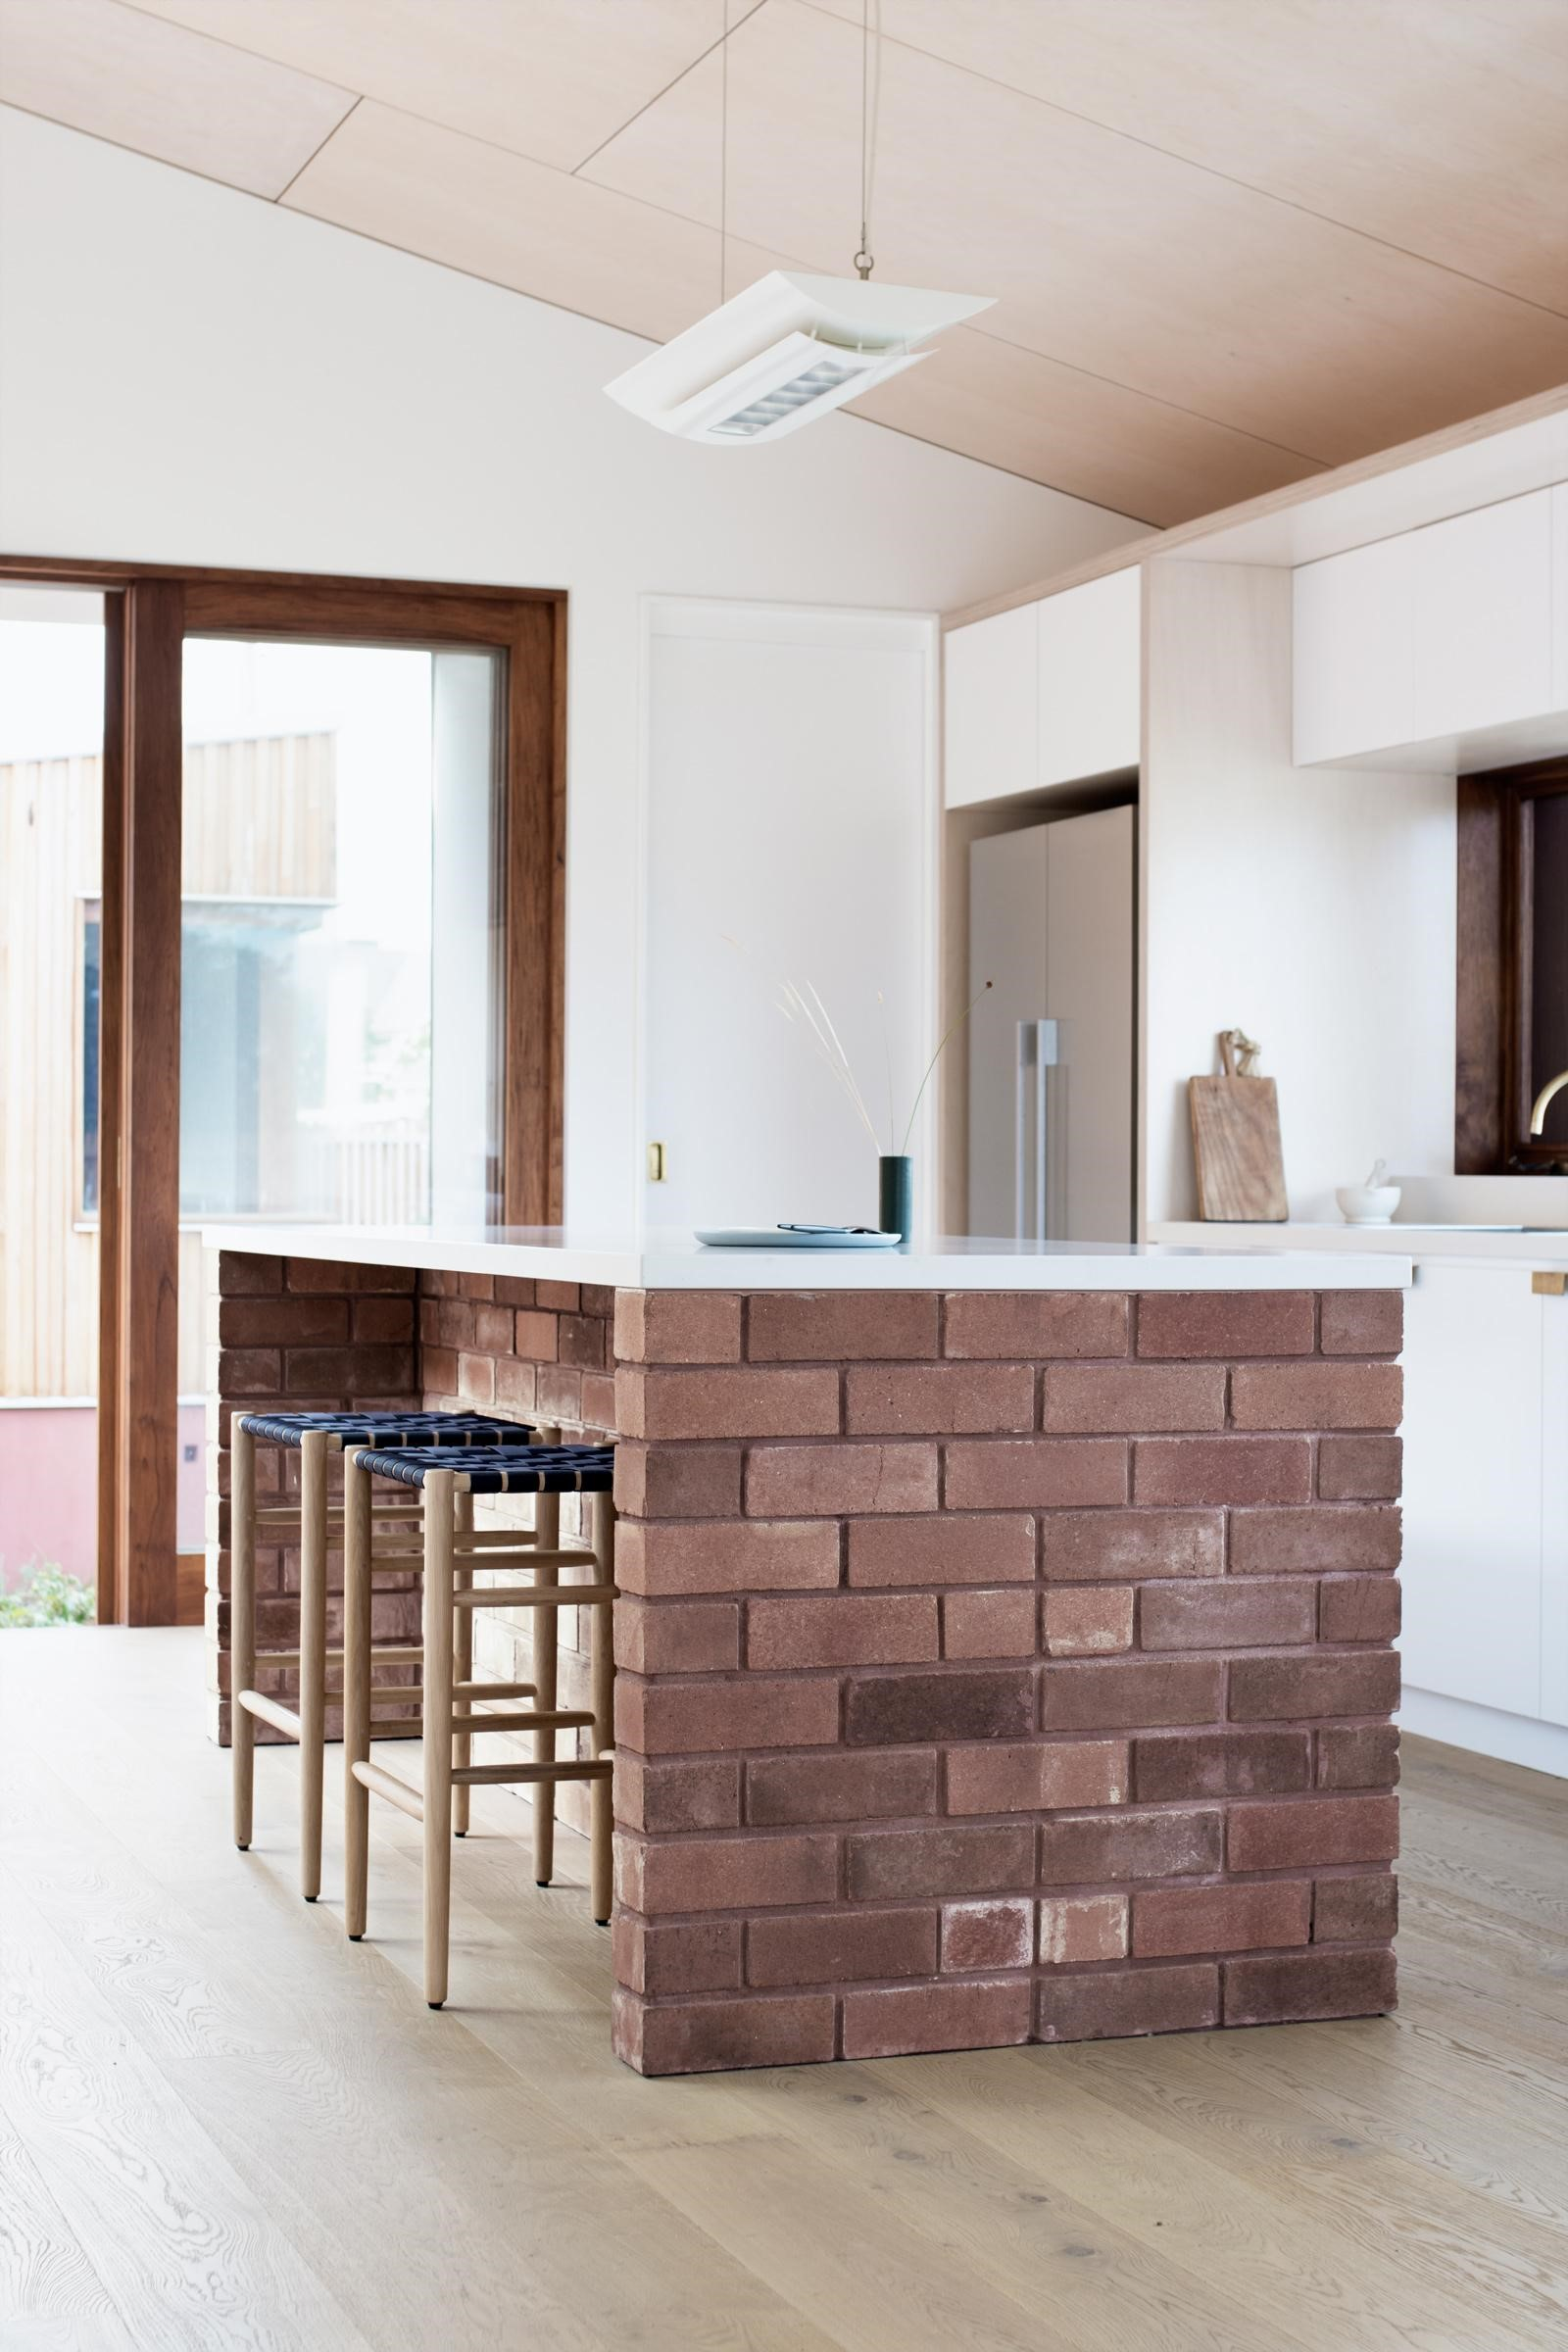 Gallery Of The Three Piece House By Trias Studio Local Australian Residential Architecture & Interiors Sydney, Nsw Image 9